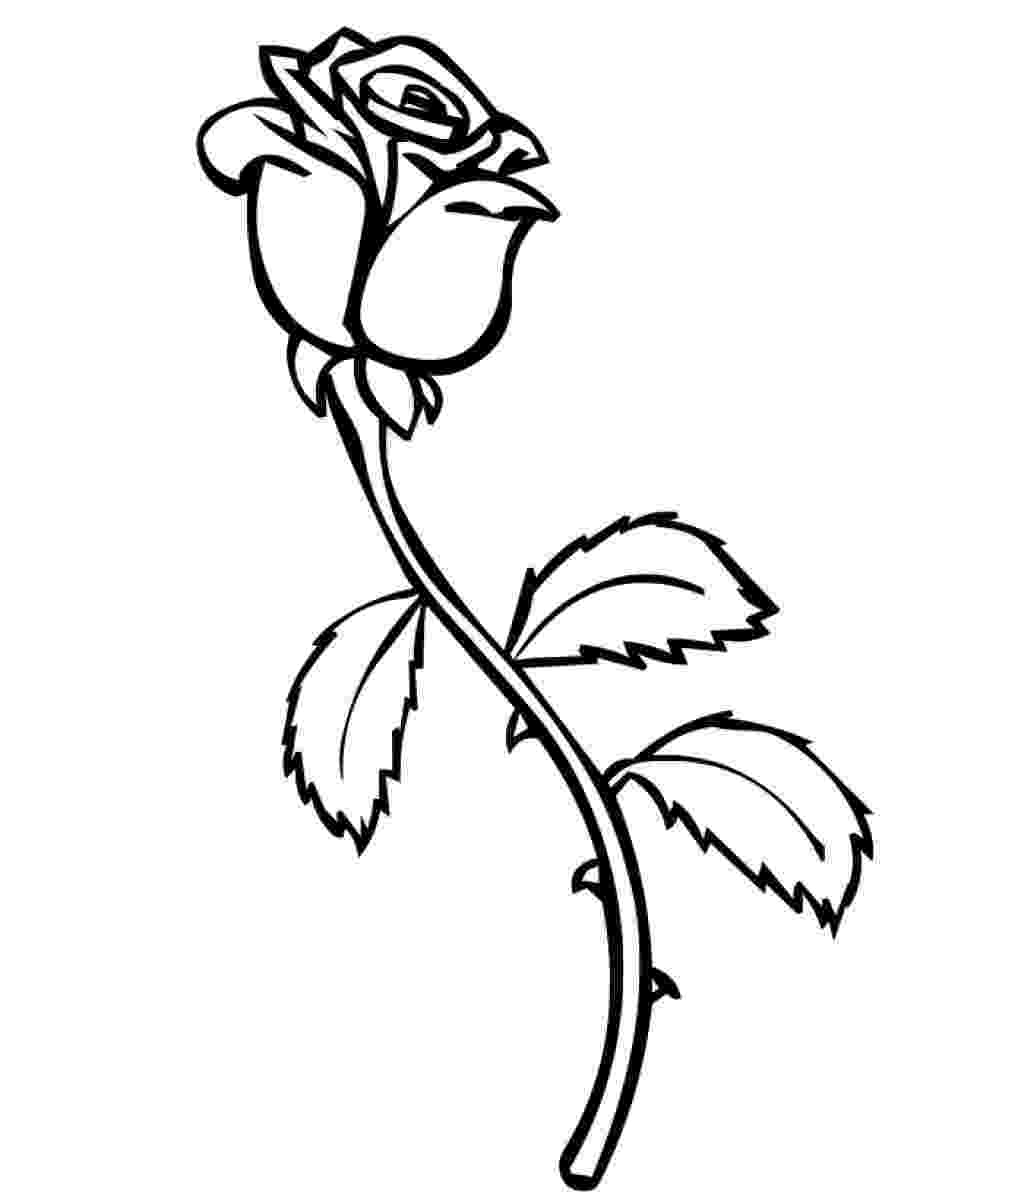 rose coloring pages roses coloring pages to download and print for free rose coloring pages